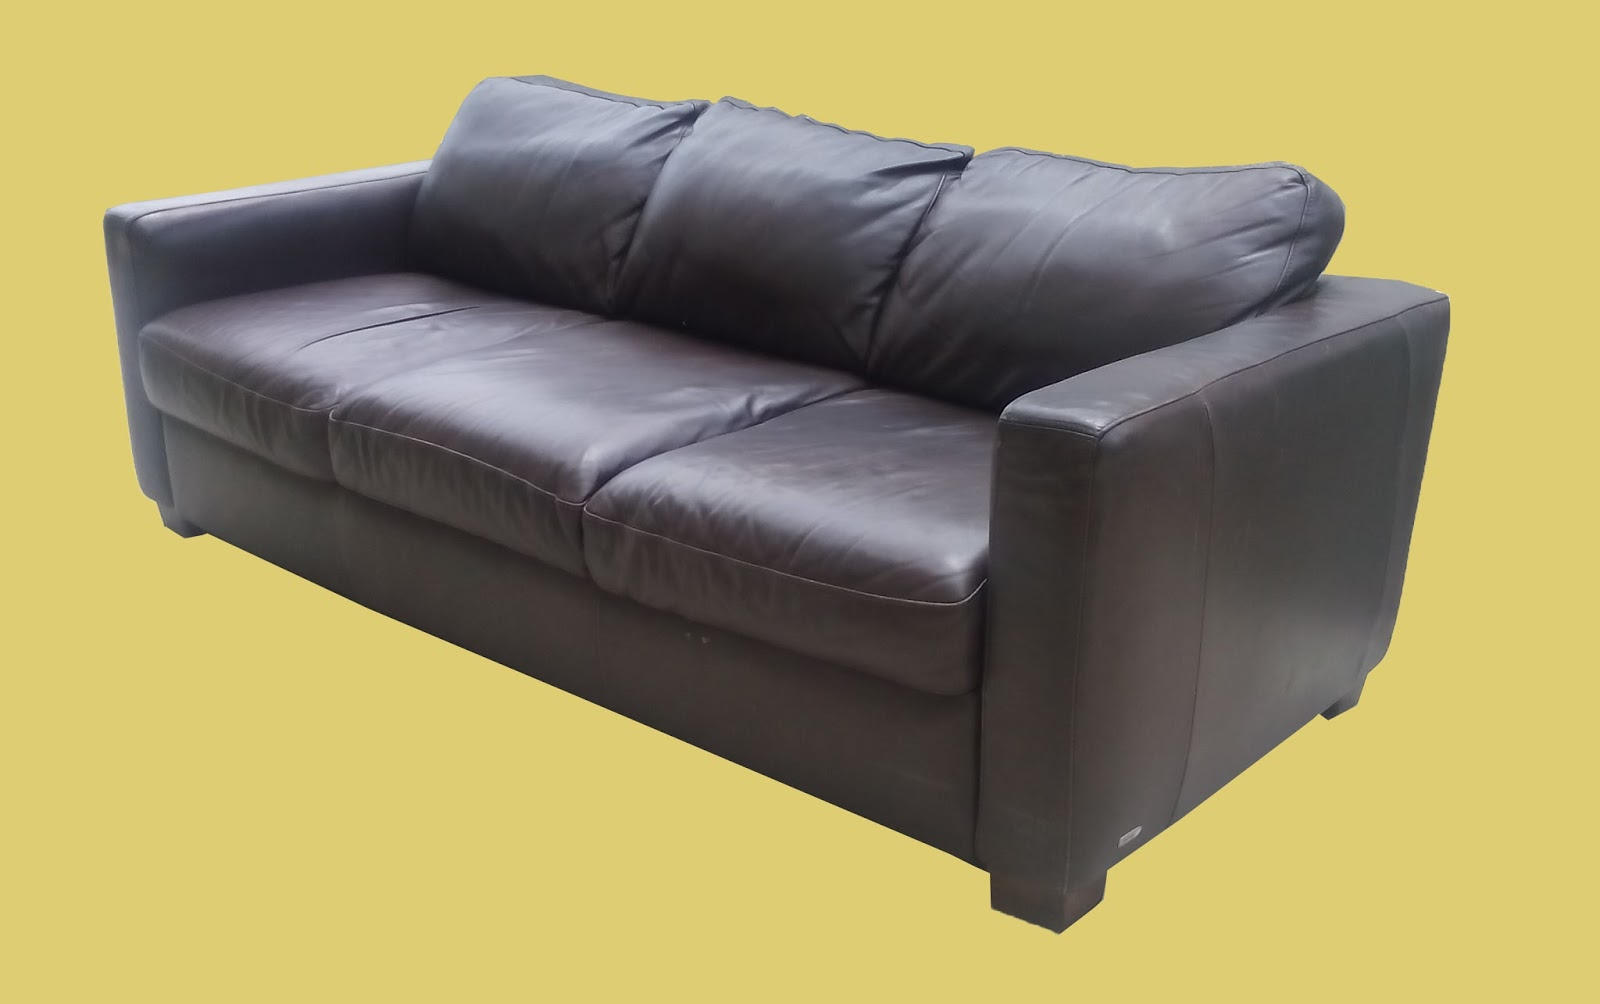 Uhuru Furniture Collectibles Leather Sofa By Italsofa 295 Sold